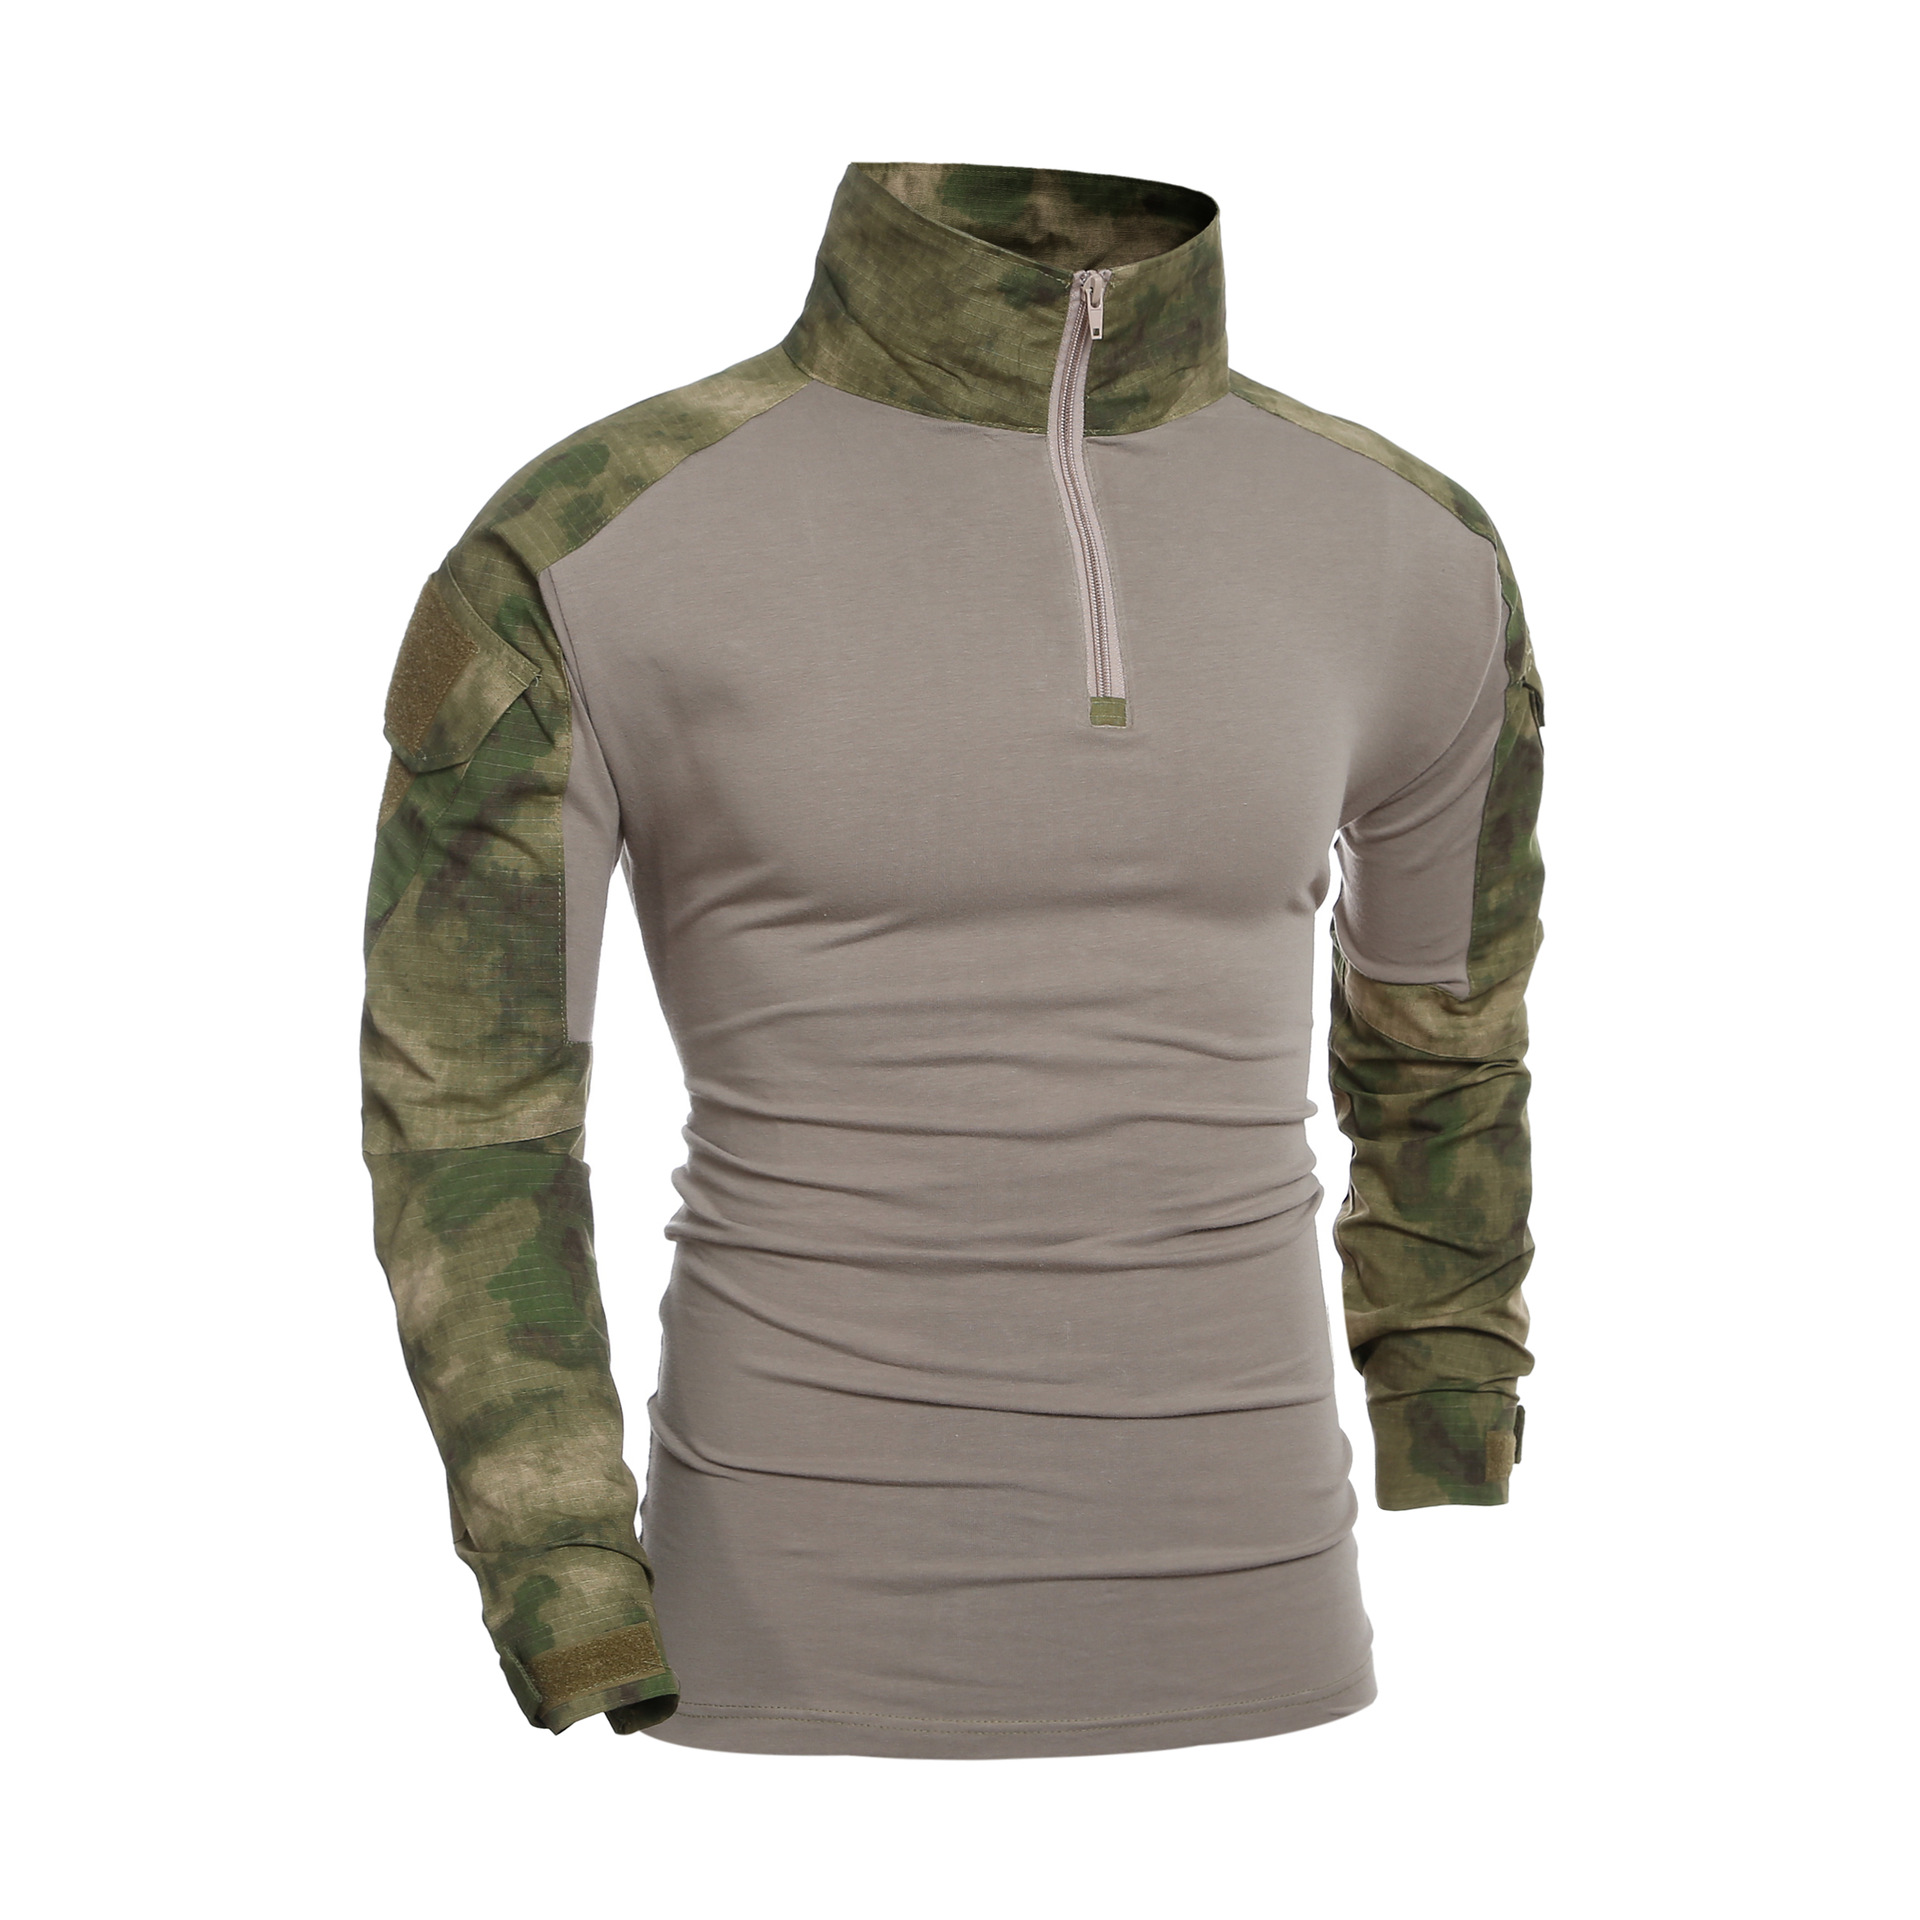 Men's Tactical T-shirts Special Forces Army Military Camouflage Long Sleeve Tee Shirts Combat Compress Quick Drying Clothes